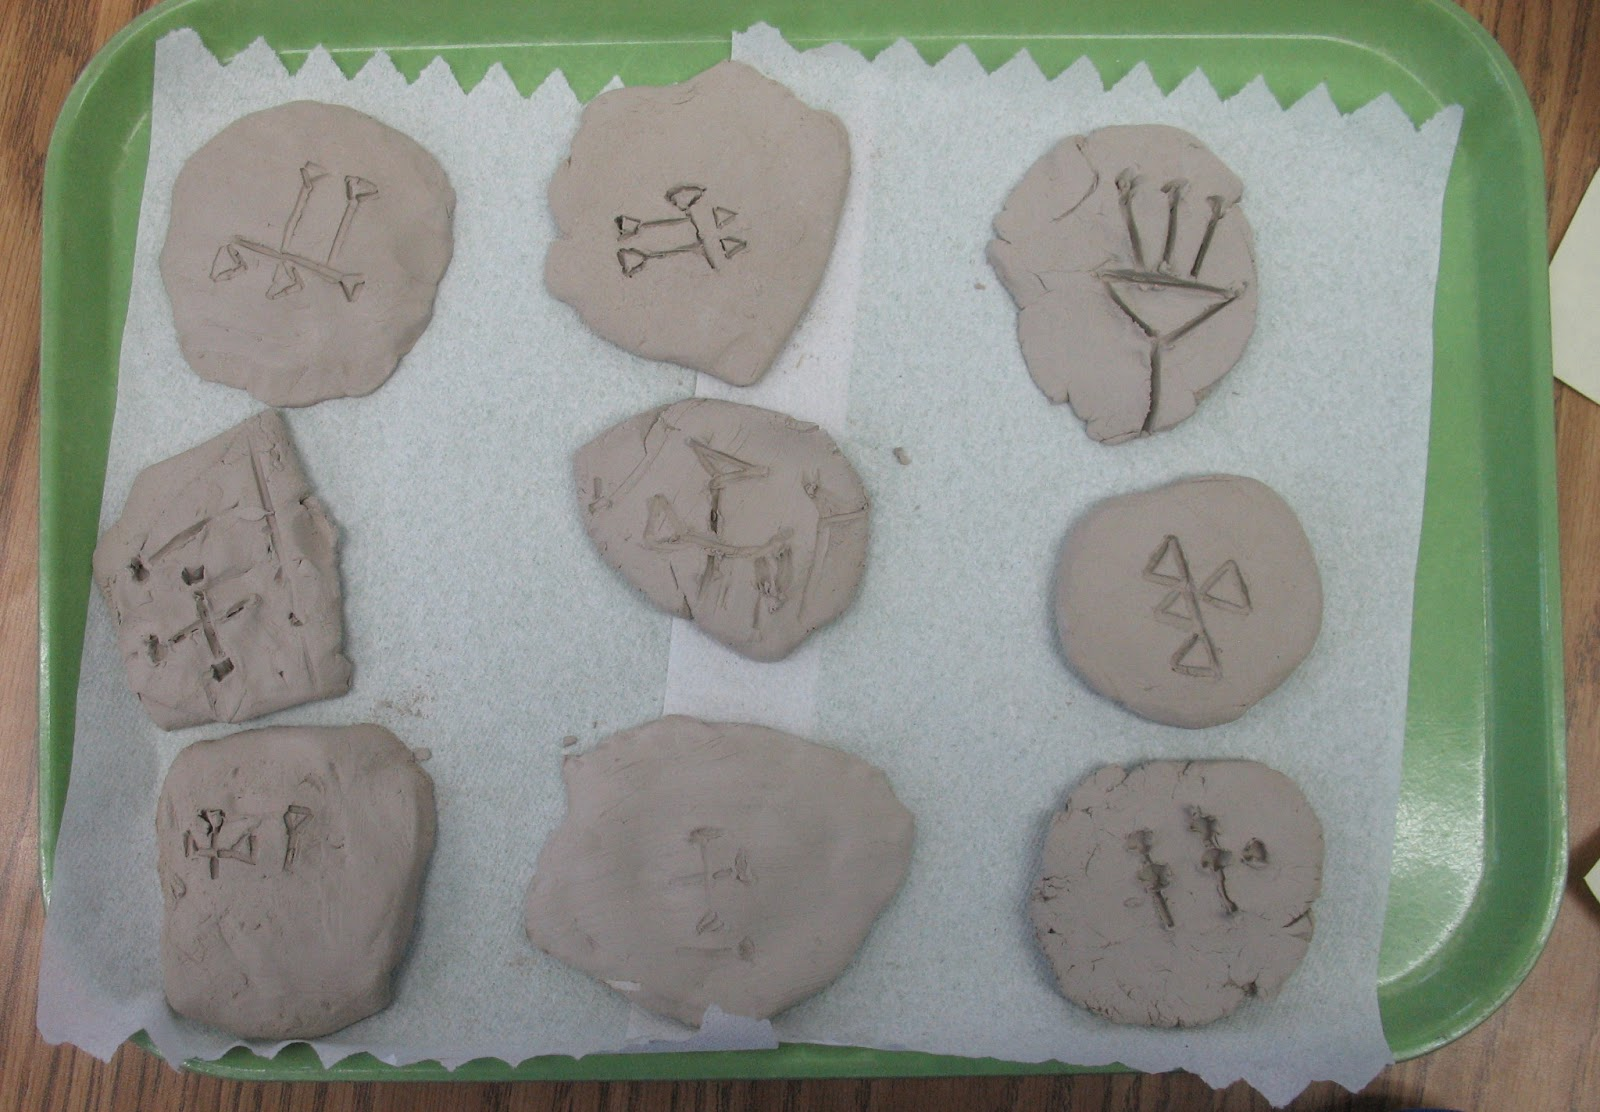 Cuneiform writing activity for students